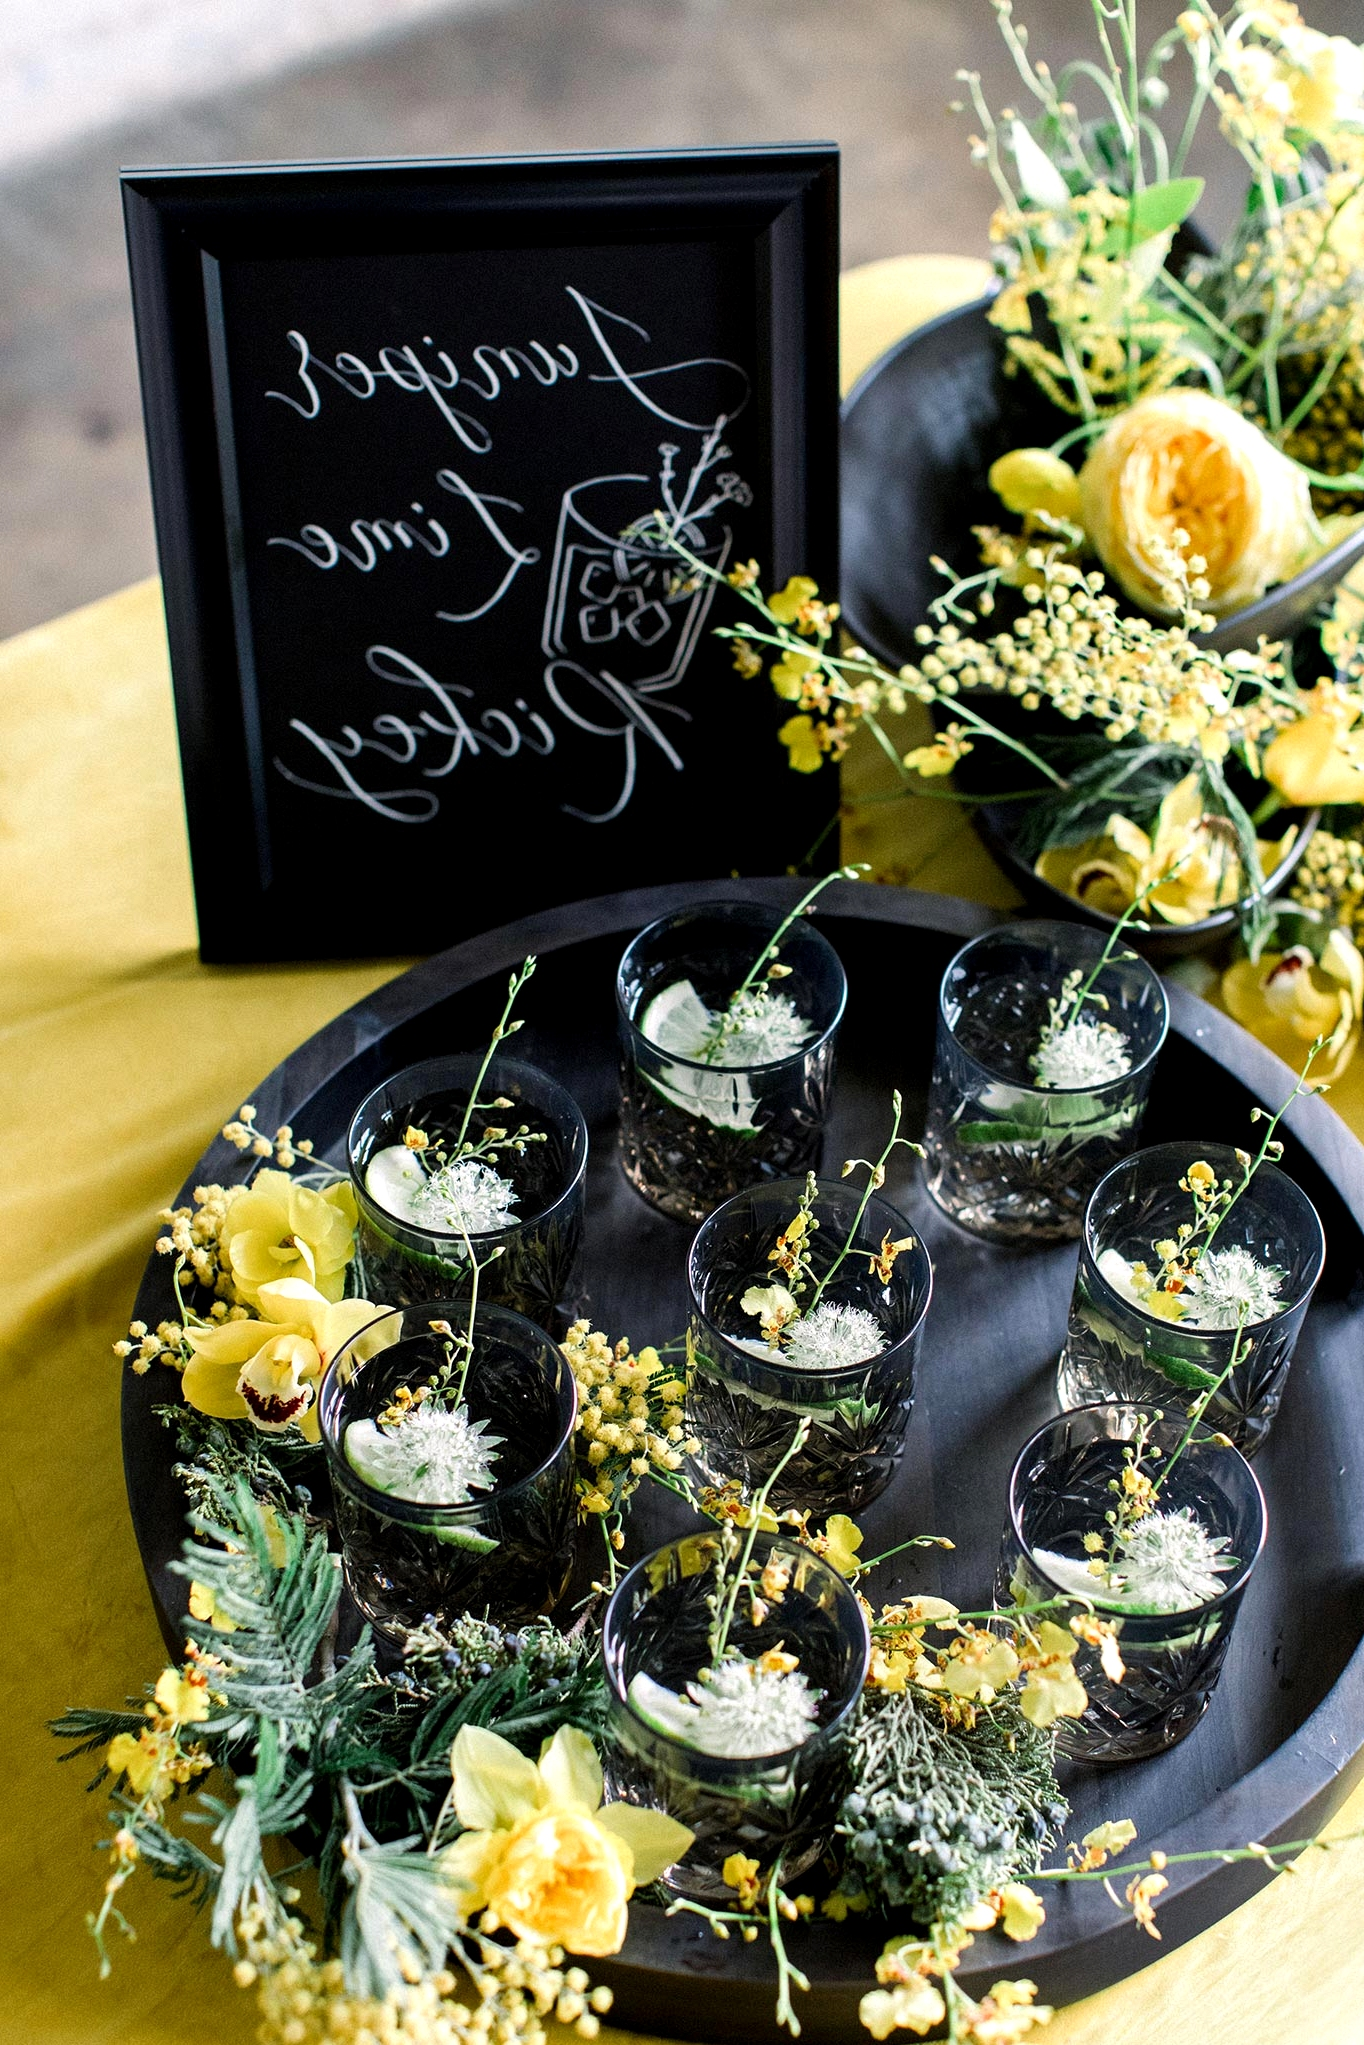 black crystal cut glassware with botanical cocktails on a matte black serving tray with yellow flower accents